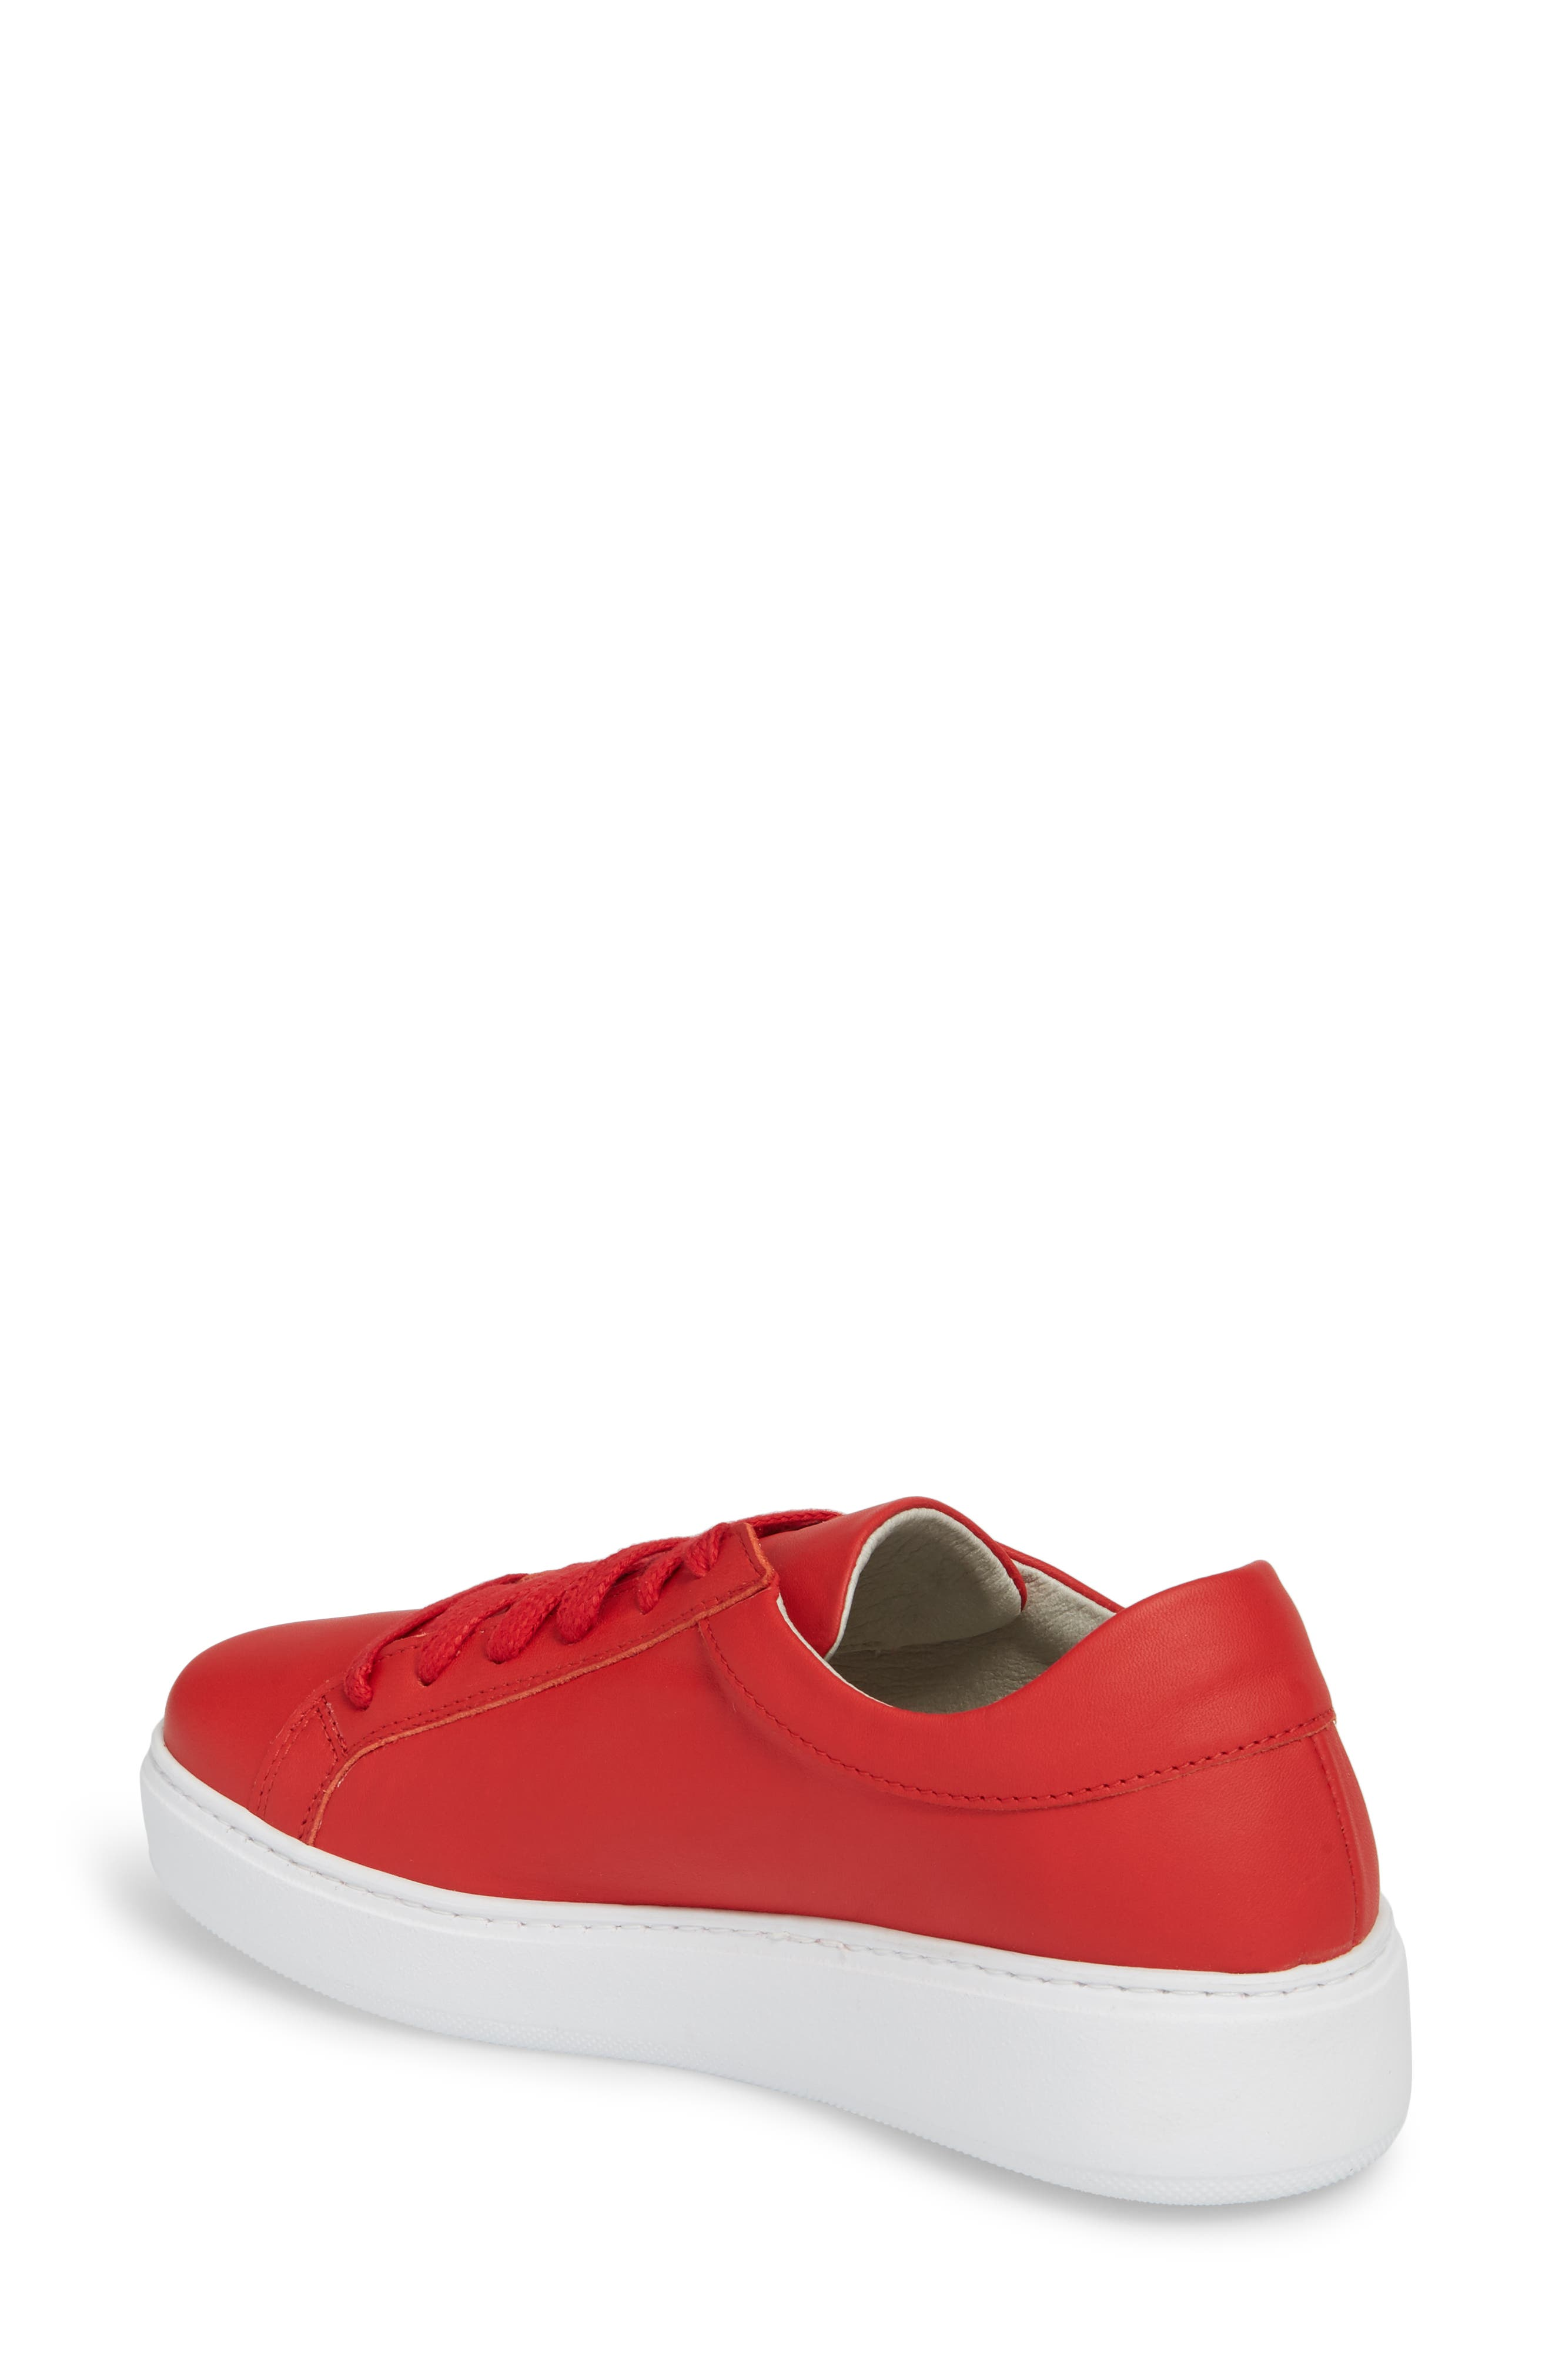 Tully Sneaker,                             Alternate thumbnail 2, color,                             Red Leather